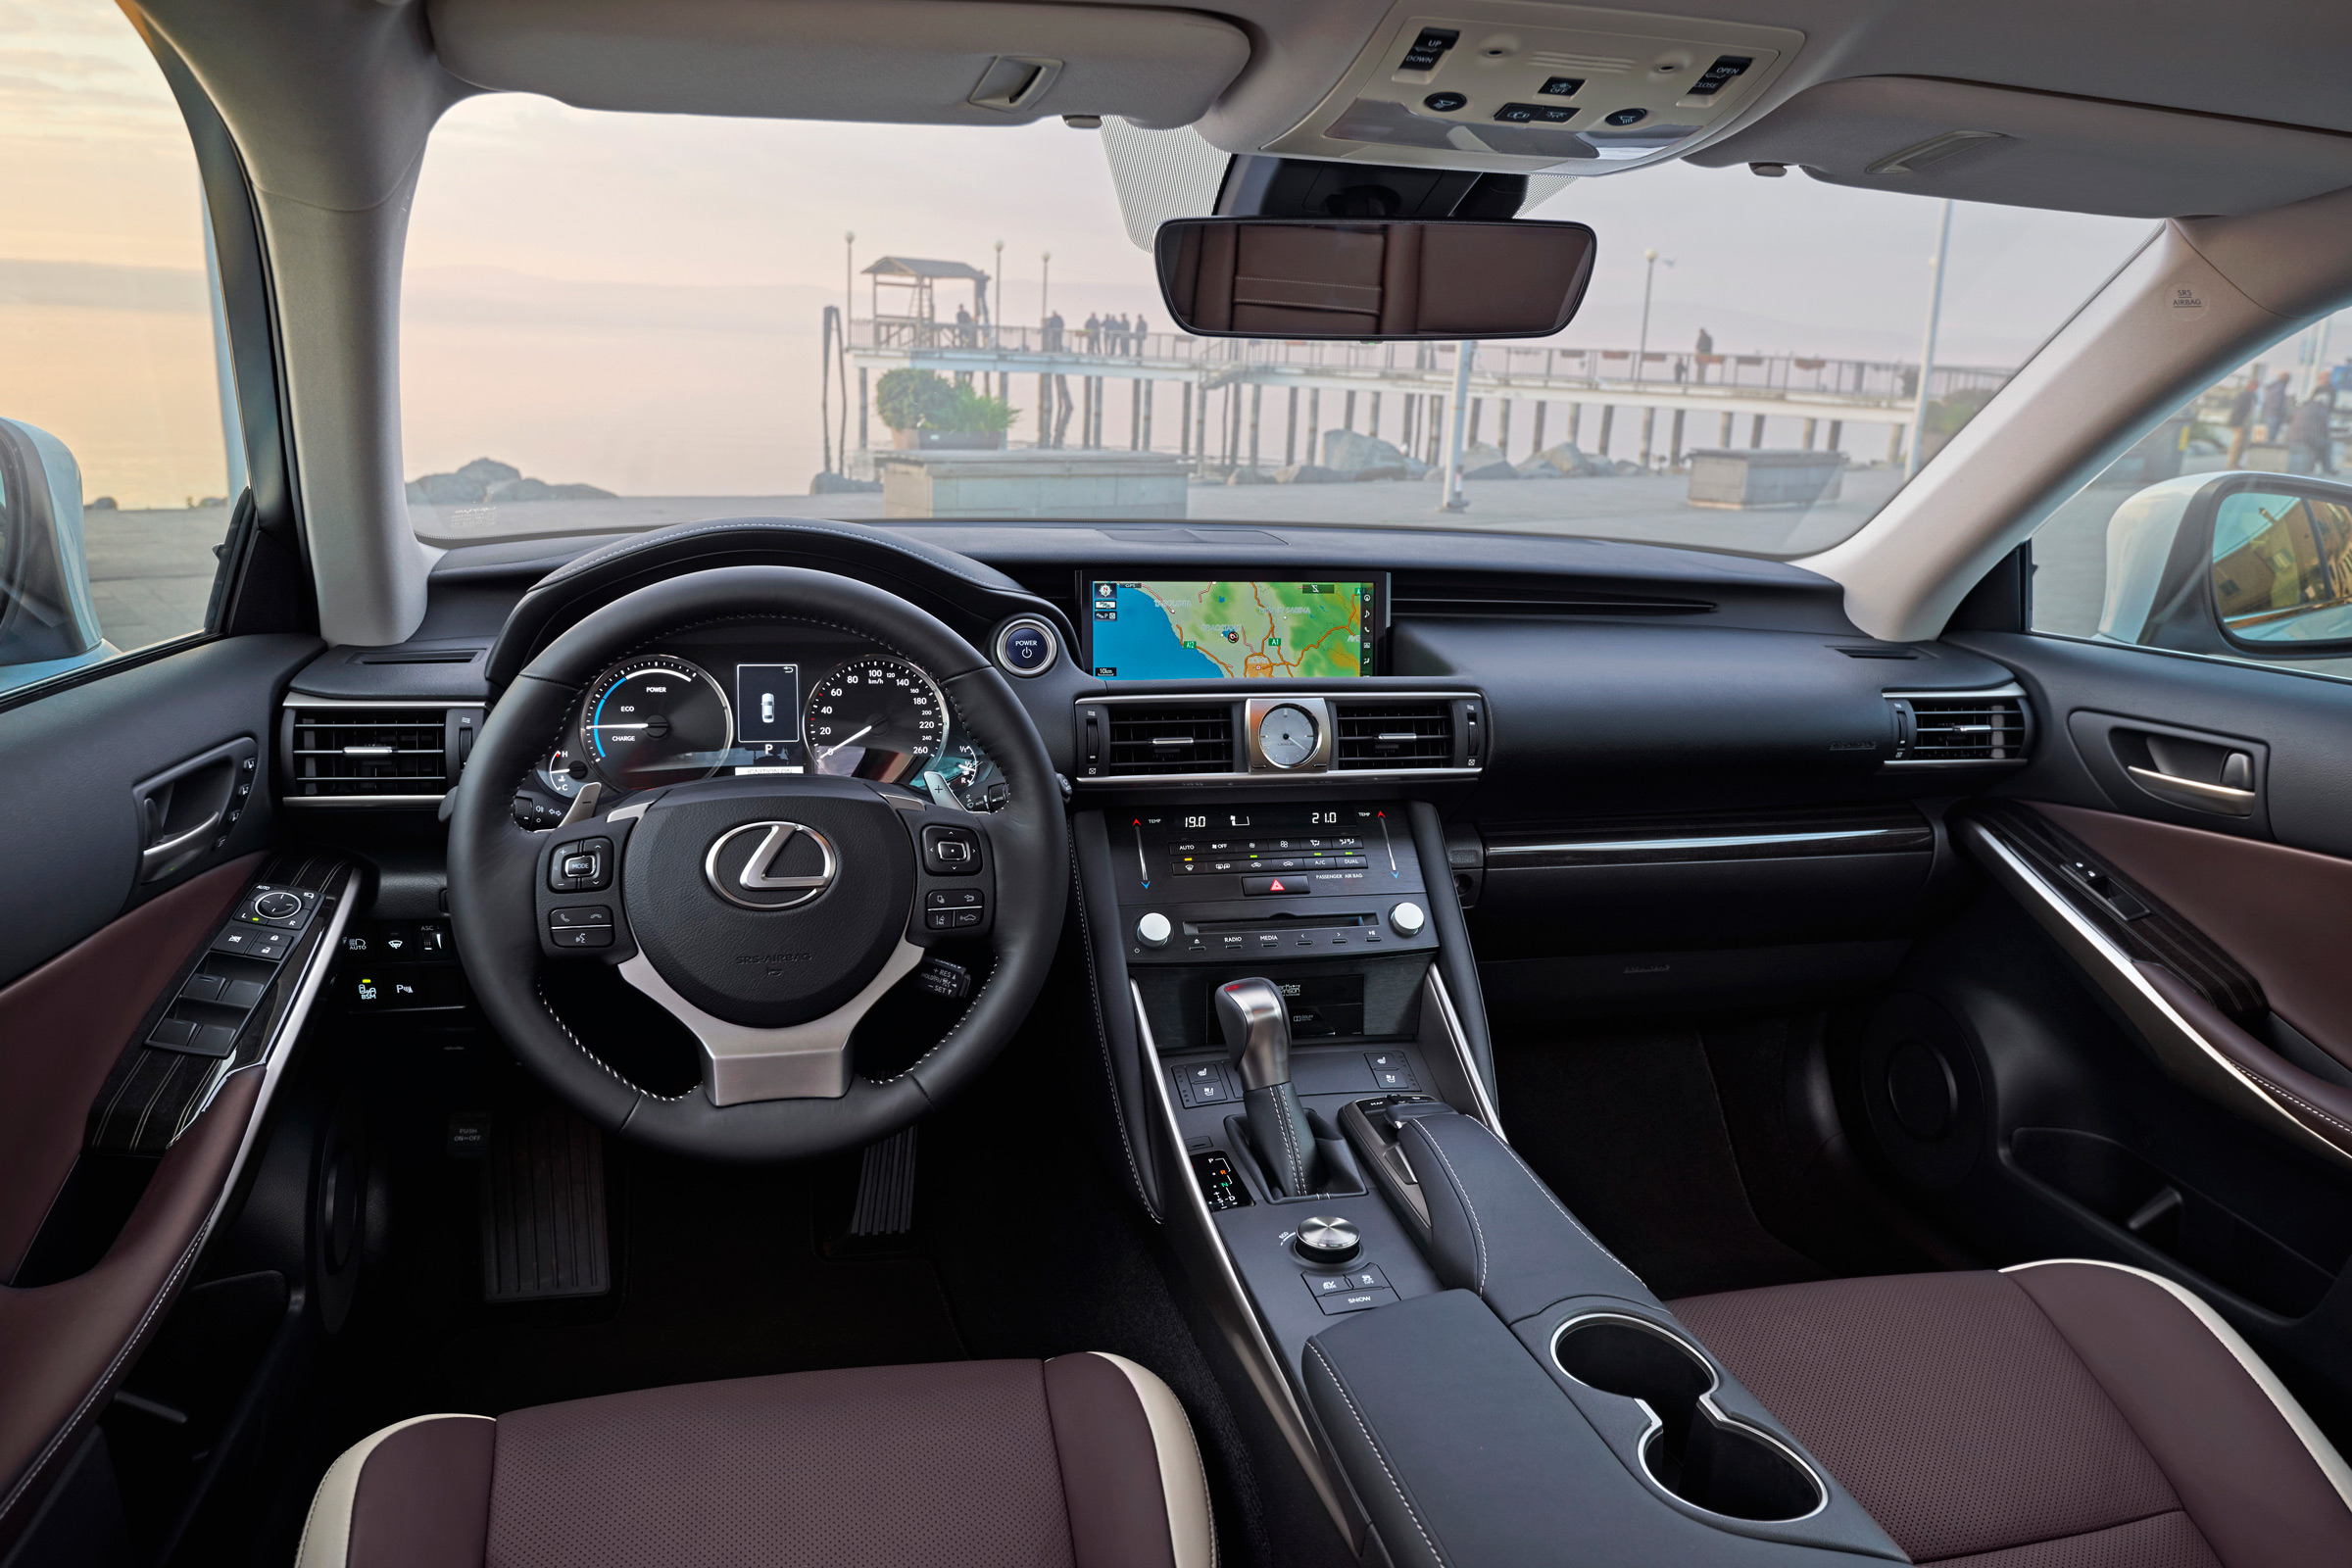 2017 Lexus IS 300h Interior Dashboard (View 11 of 13)